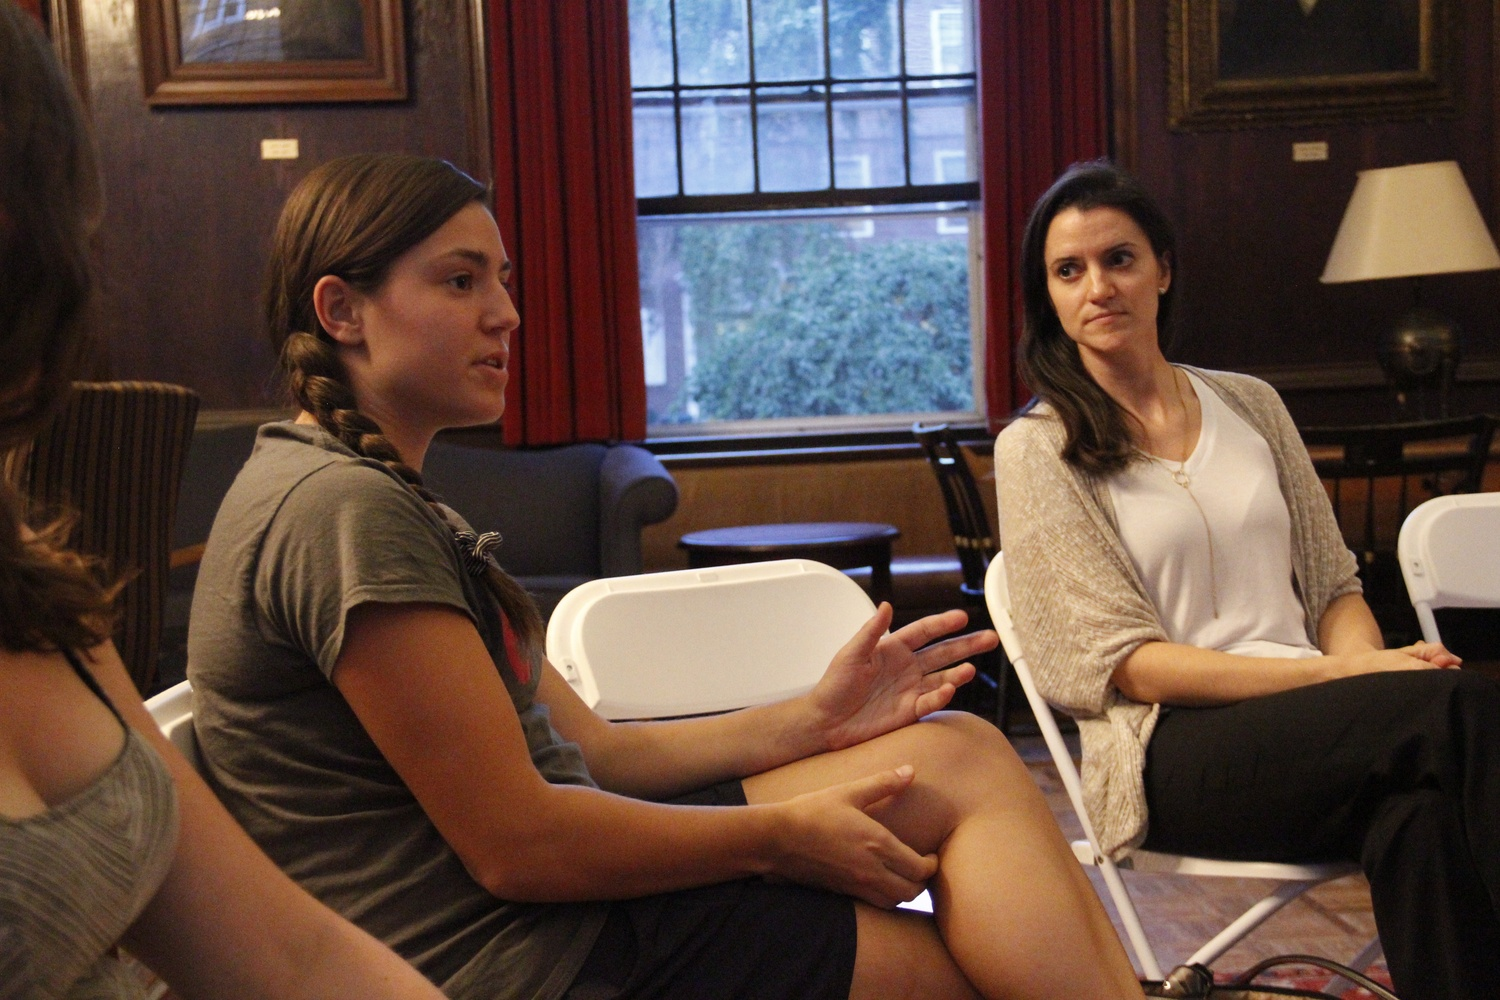 The Student Labor Action Movement hosted a teach-in in Kirkland House on September 21. Lawyer Erin Walczewski (right) began the discussion with background information on labor strikes. Here, a Harvard student poses a question to the group.